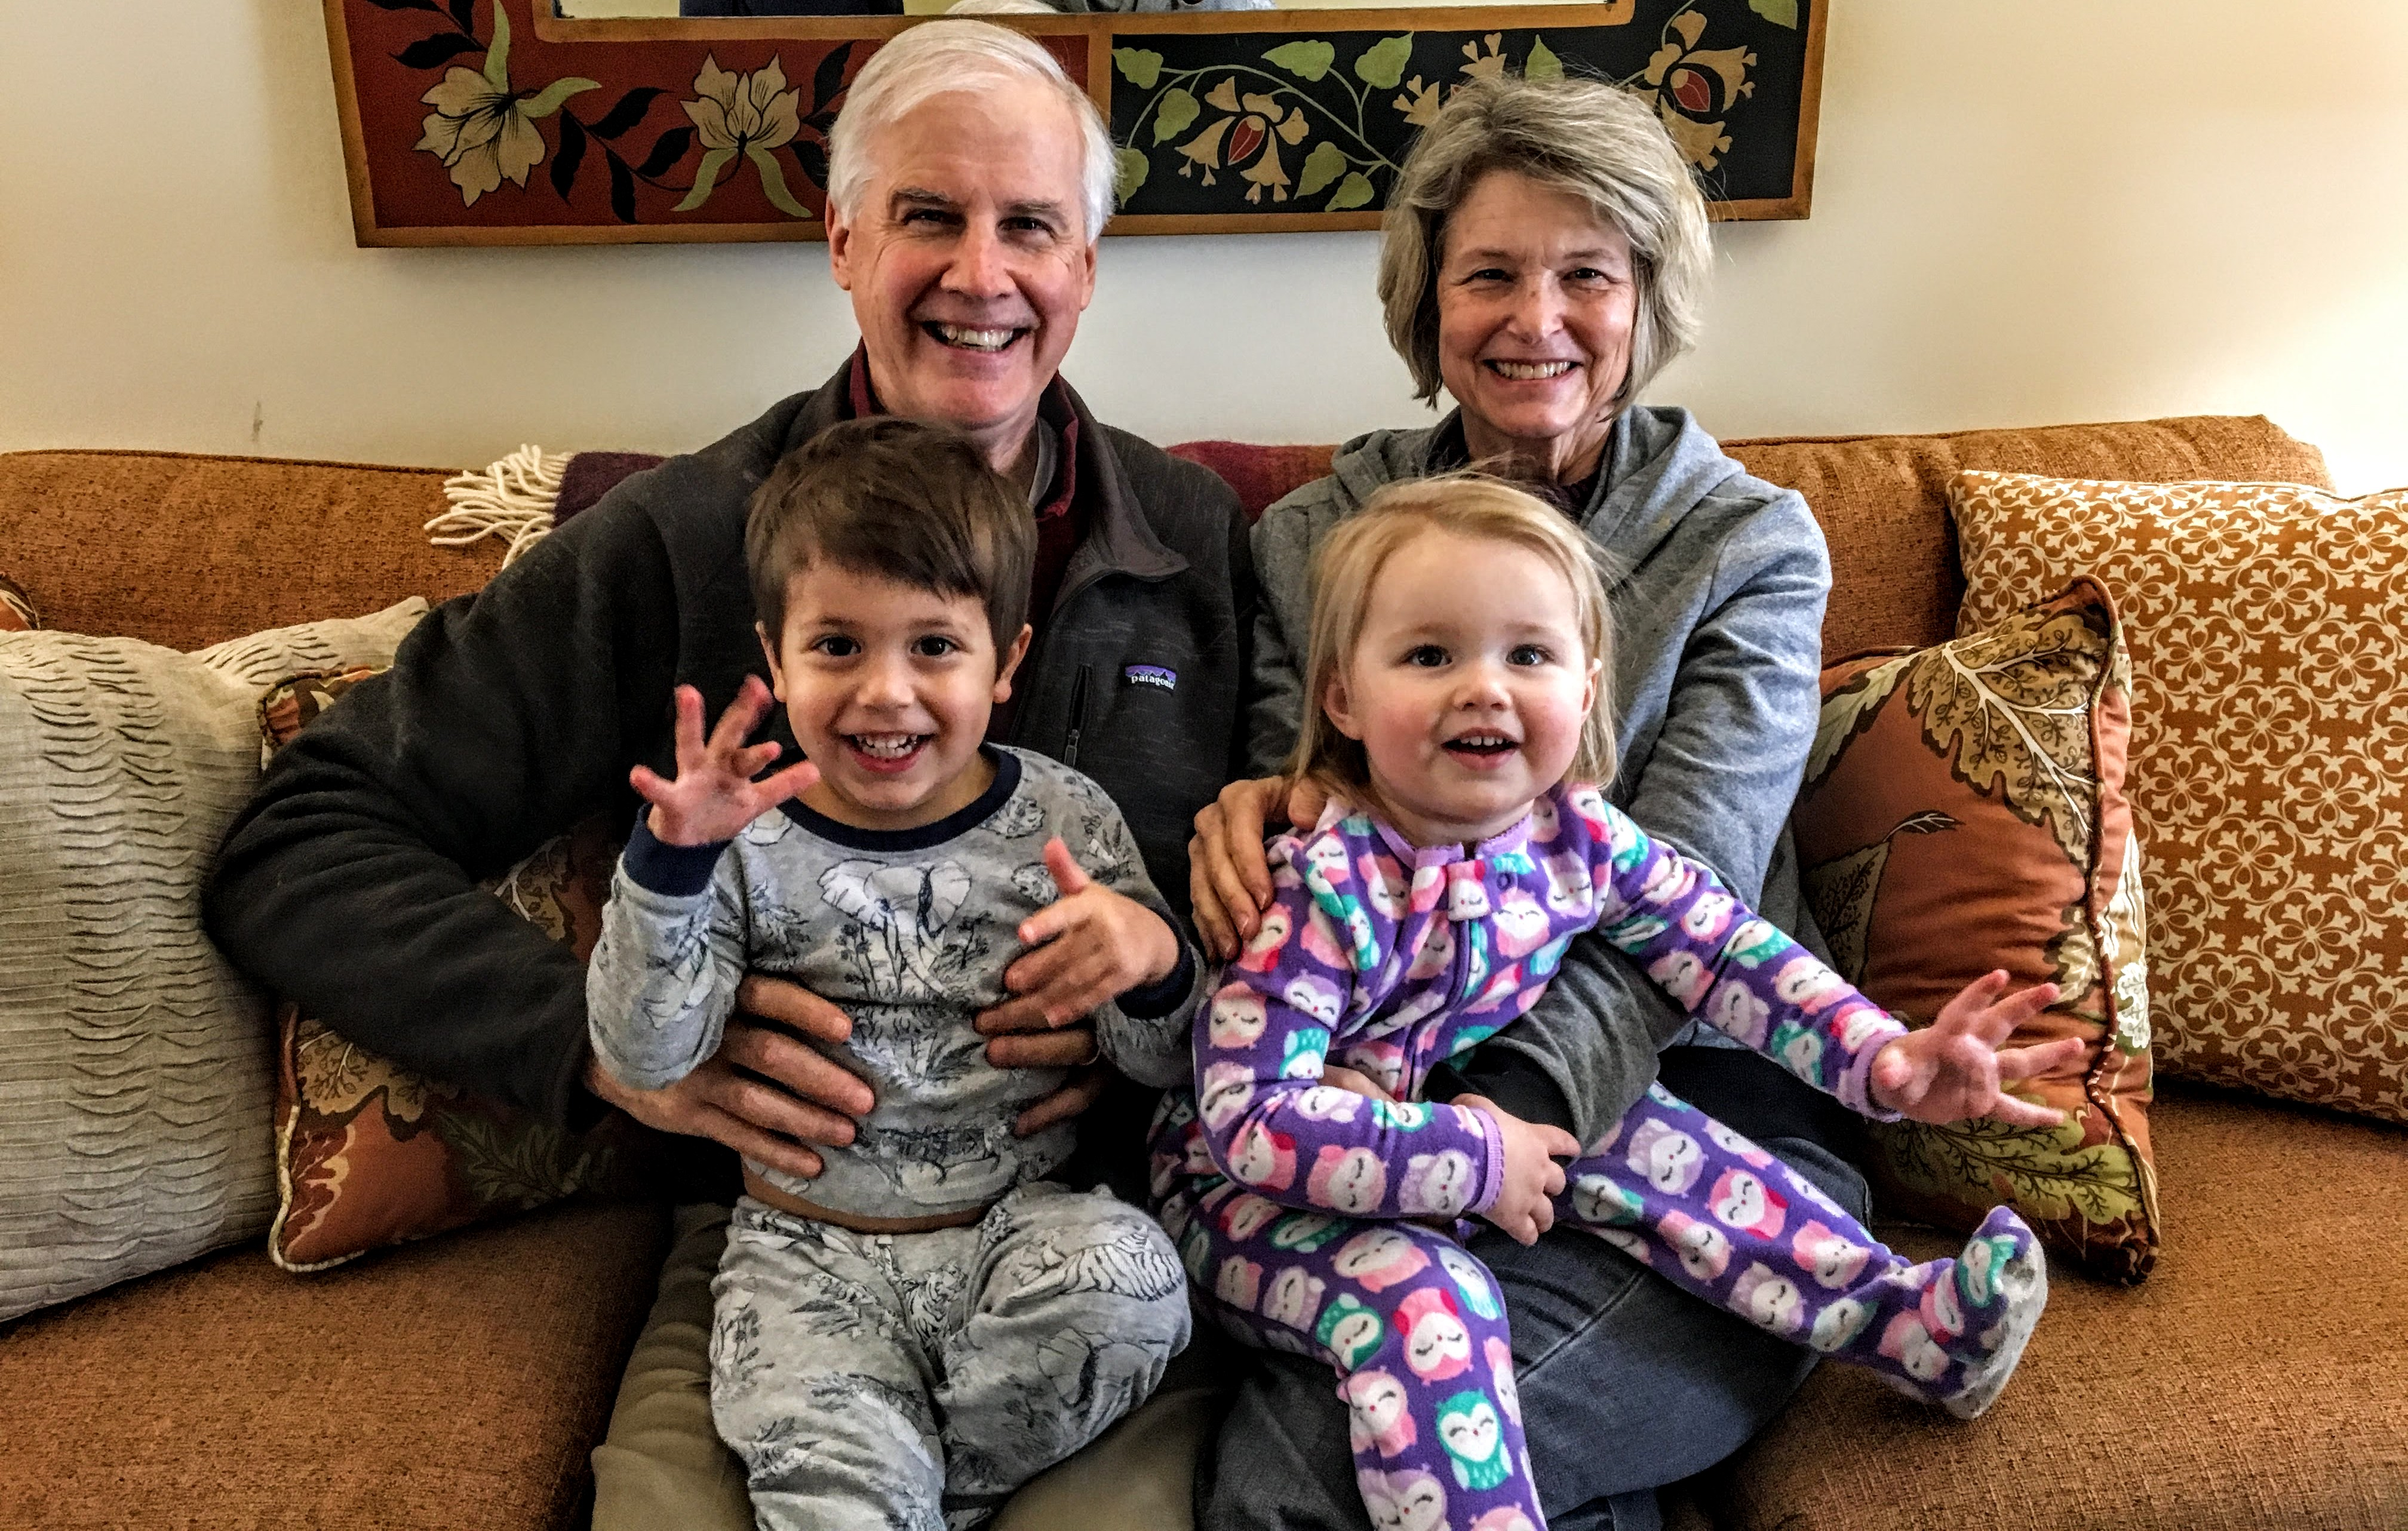 Doug Miller with his grandkids